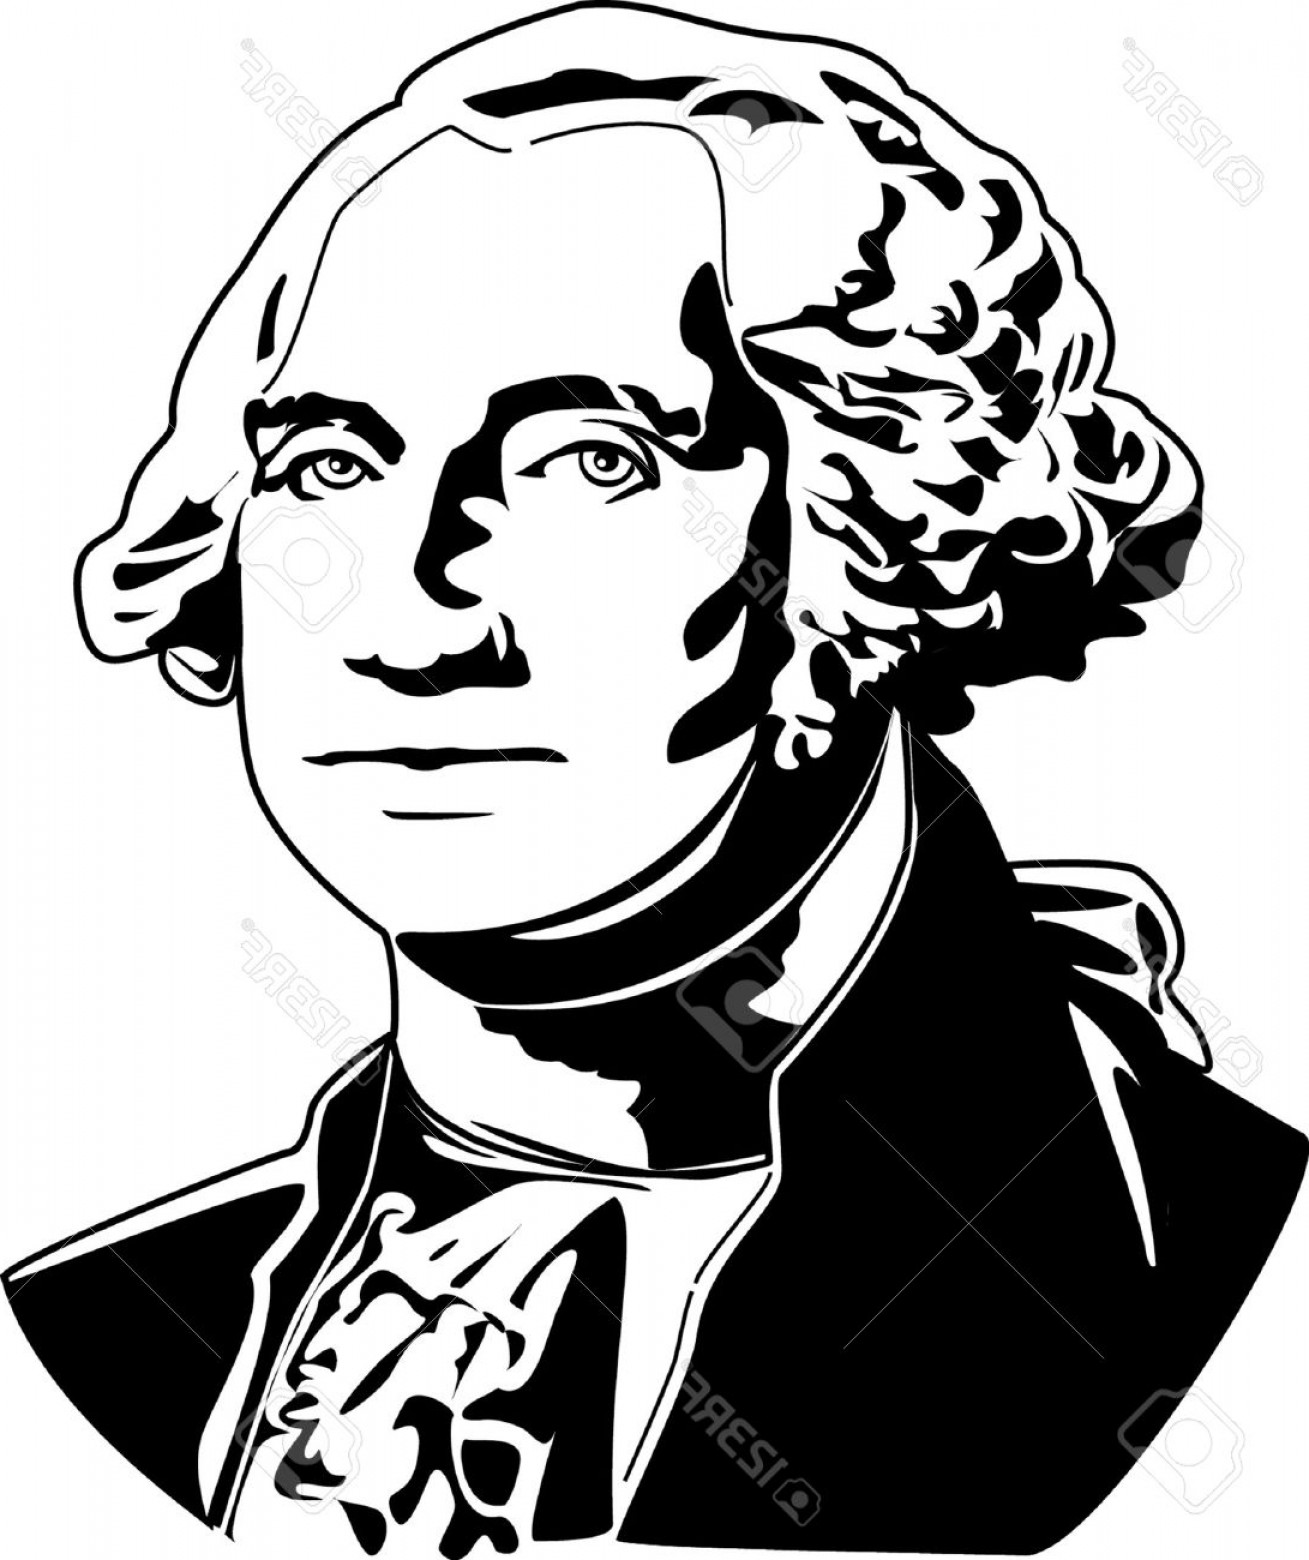 Free black and white clipart george washington boat illustration picture black and white library George washington paintings search result at PaintingValley.com picture black and white library